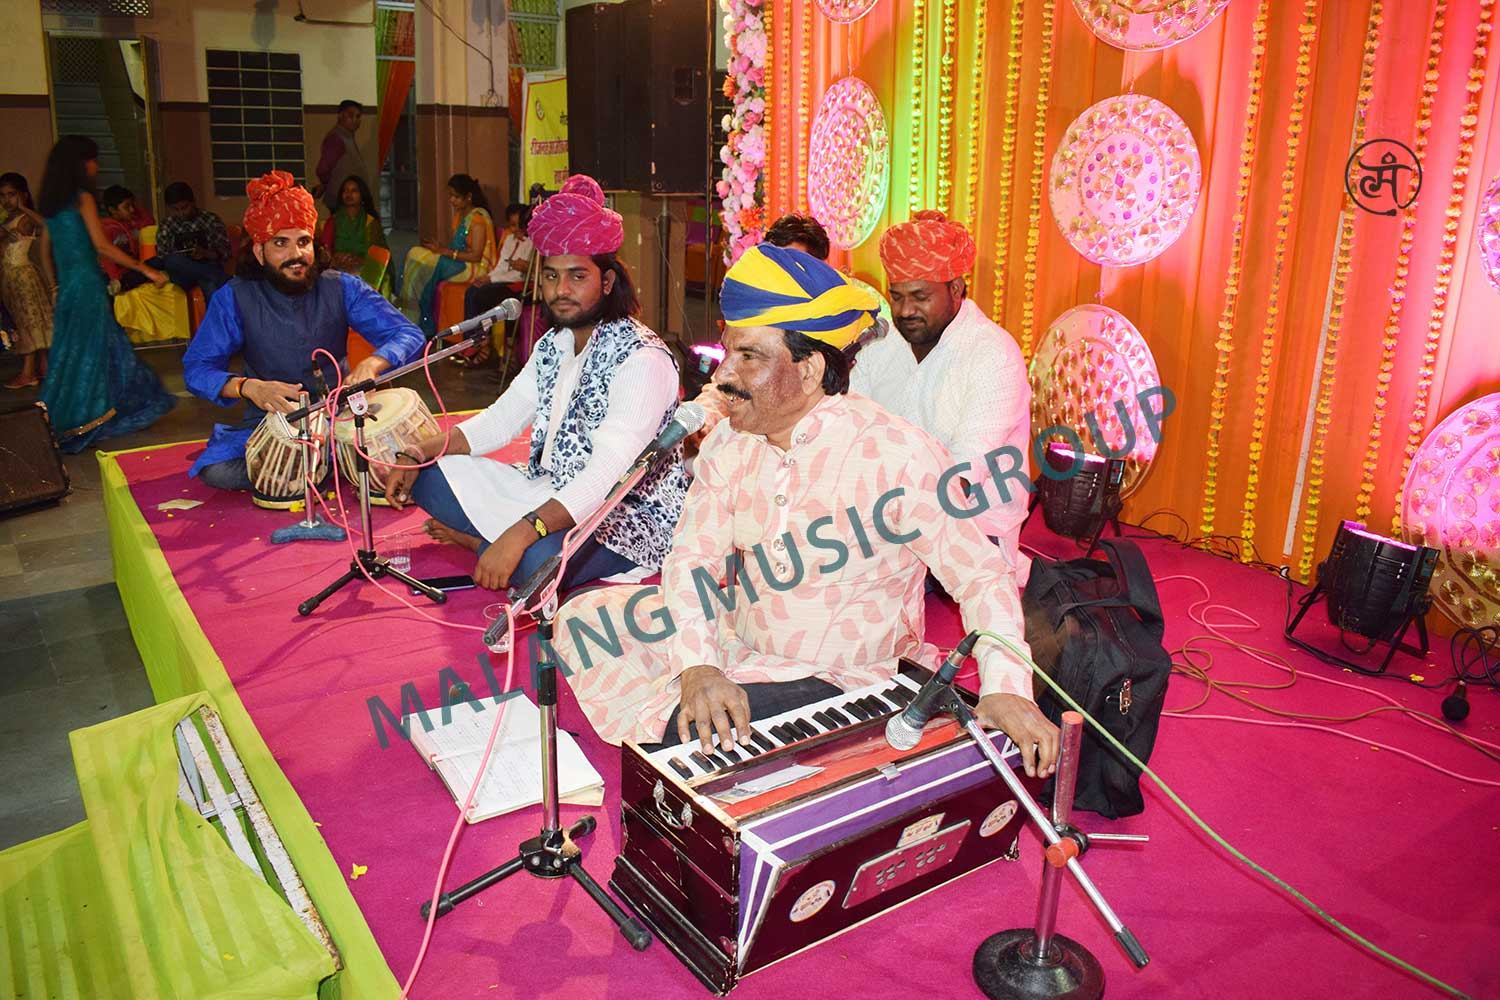 Music And Dance Group in Jaipur